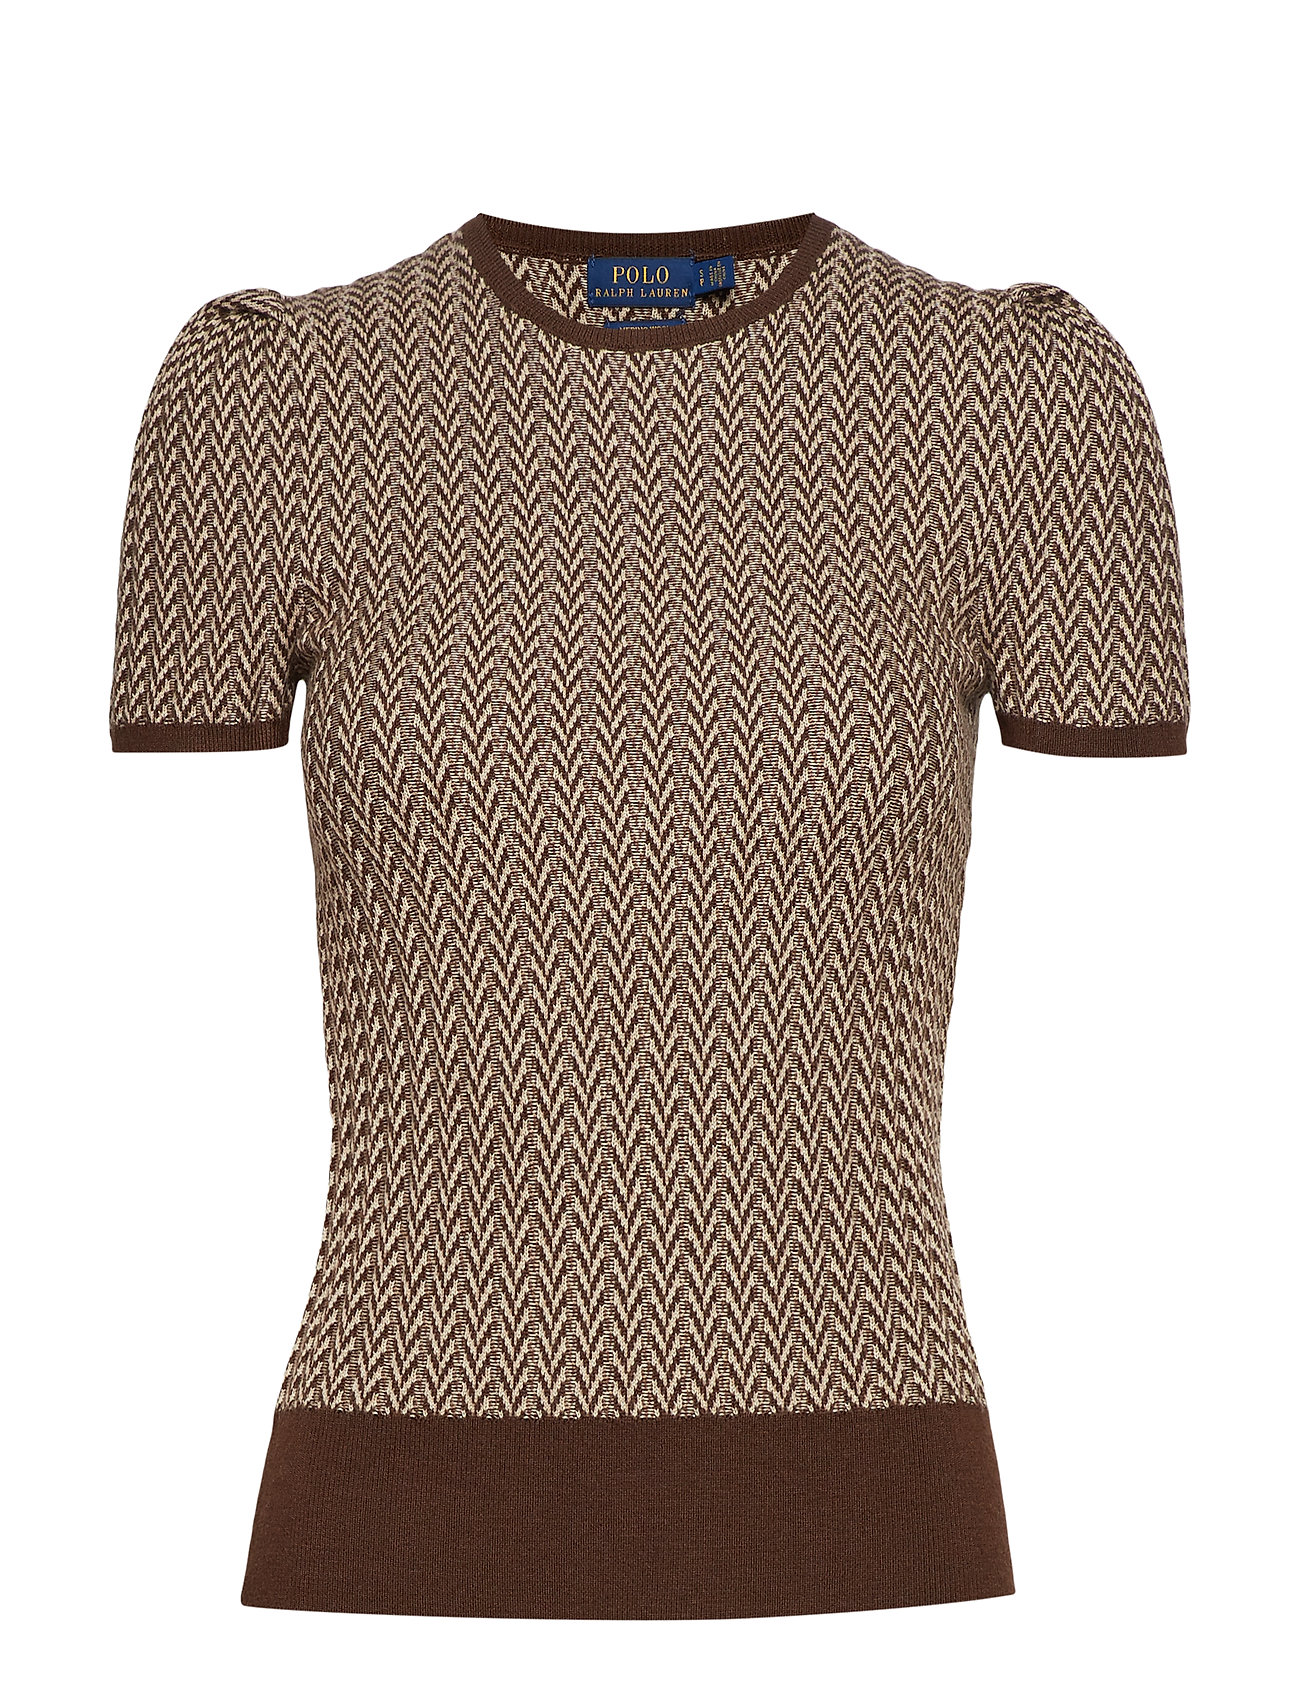 Polo Ralph Lauren RIBBED HERRINGBONE-SSL-SWT - BROWN/CREAM